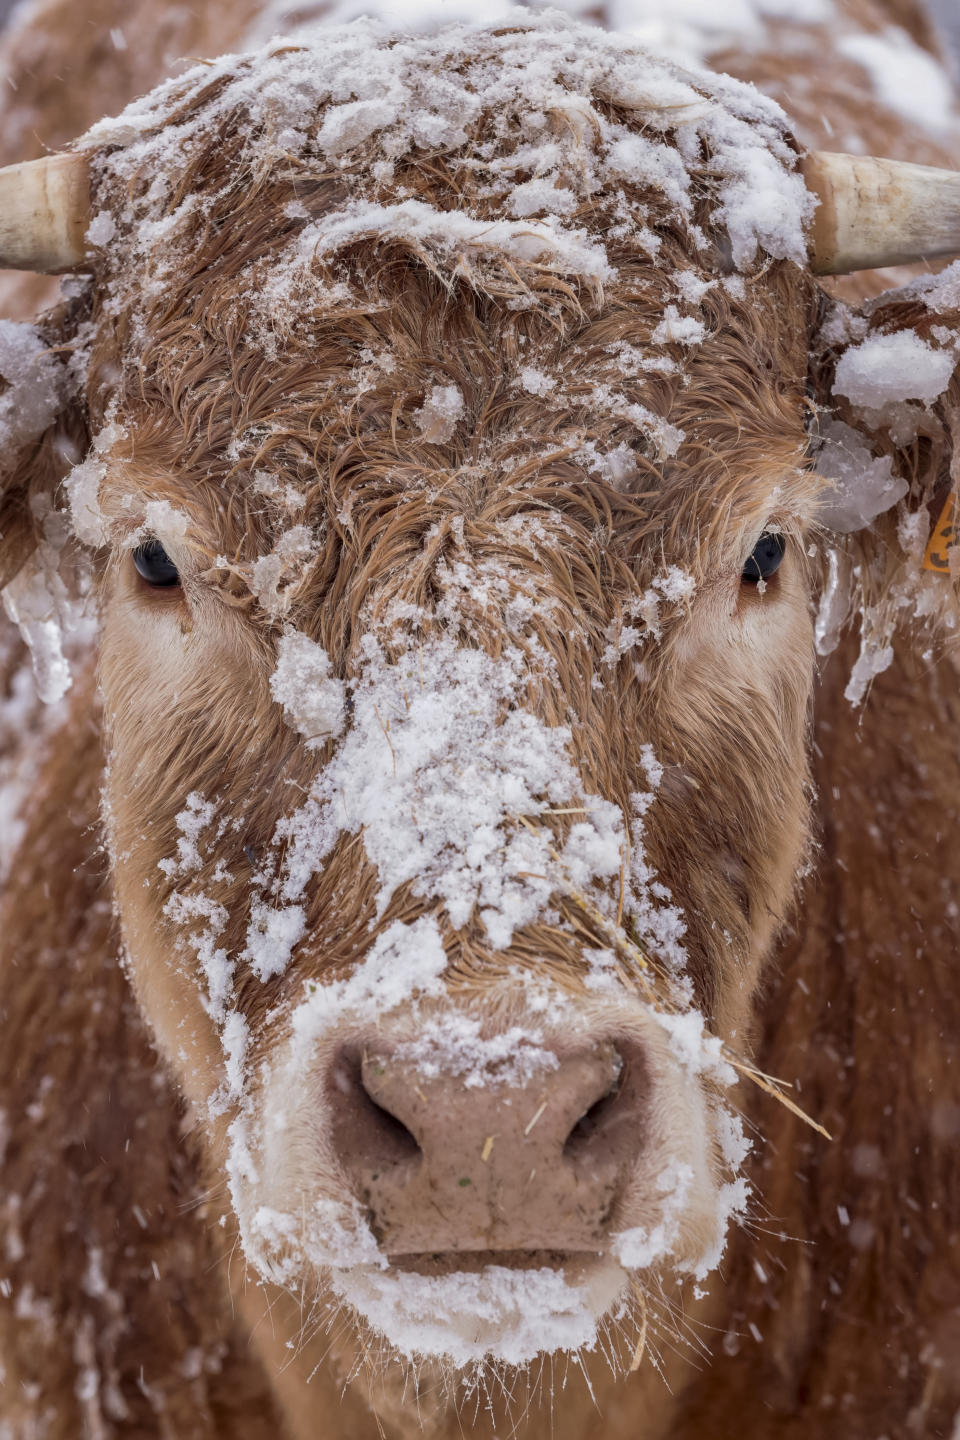 A cow grazes during a heavy snowfall in Bustarviejo, outskirts of Madrid, Spain, Saturday, Jan. 9, 2021. A persistent blizzard has blanketed large parts of Spain with 50-year record levels of snow, halting traffic and leaving thousands trapped in cars or in train stations and airports that suspended all services as the snow kept falling on Saturday. Half of Spain is on alert, with five provinces on their highest level of warning. (AP Photo/Bernat Armangue)